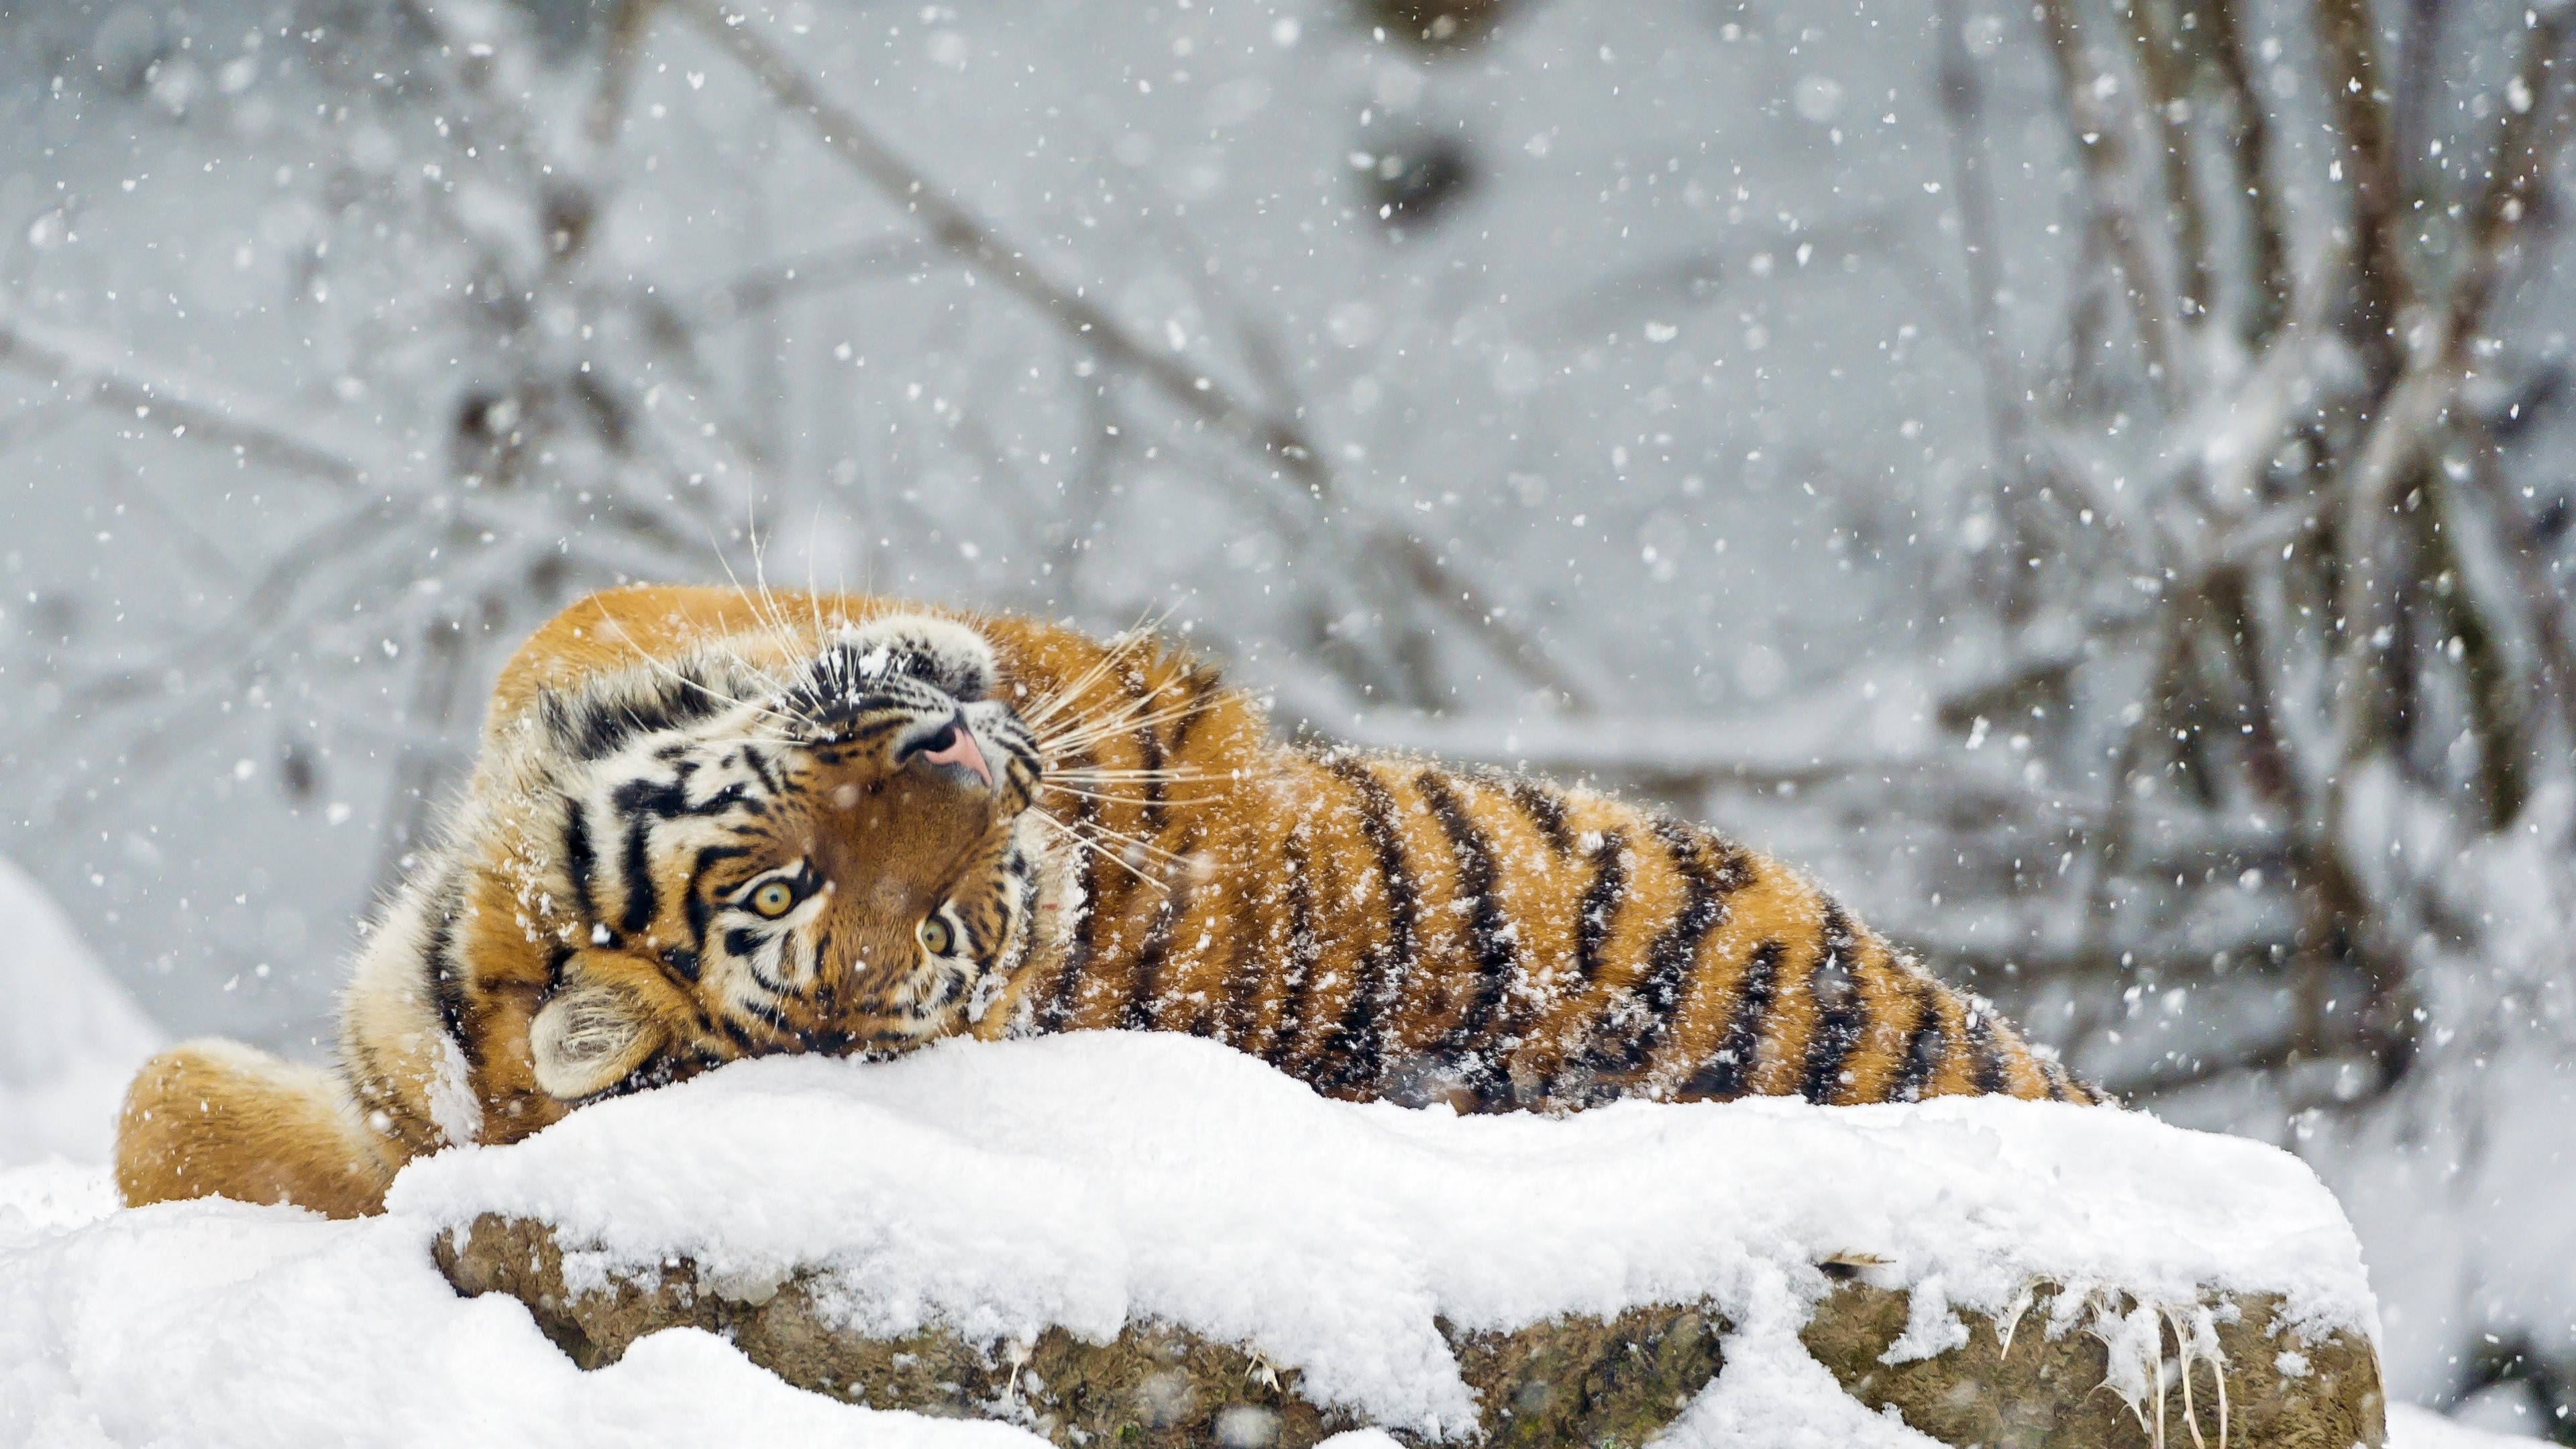 Animals Tiger Snow Wallpapers Hd Desktop And Mobile: Wallpaper Tiger, Cute Animals, Snow, Winter, 4k, Animals